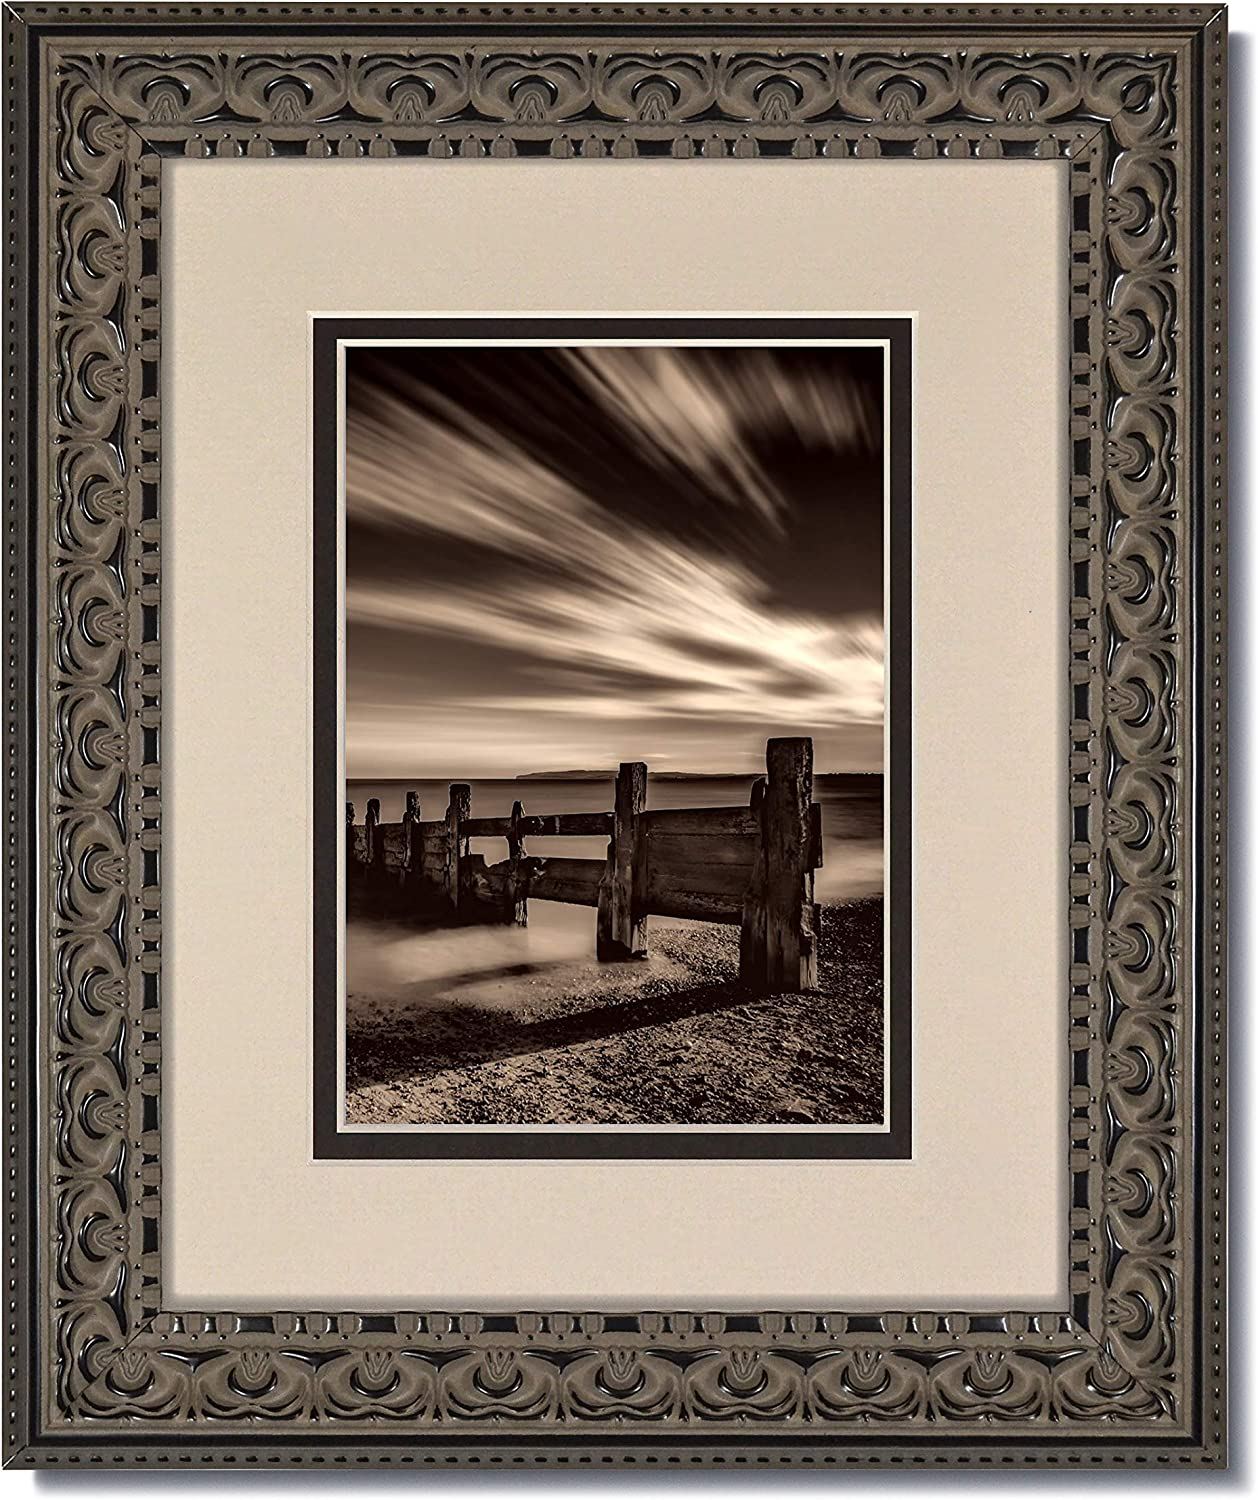 Amazon Com Set Of 6 16x20 Vintage Ornate Black Picture Frames With Clear Glass And Oyster Black Double Mat For 12x16 6